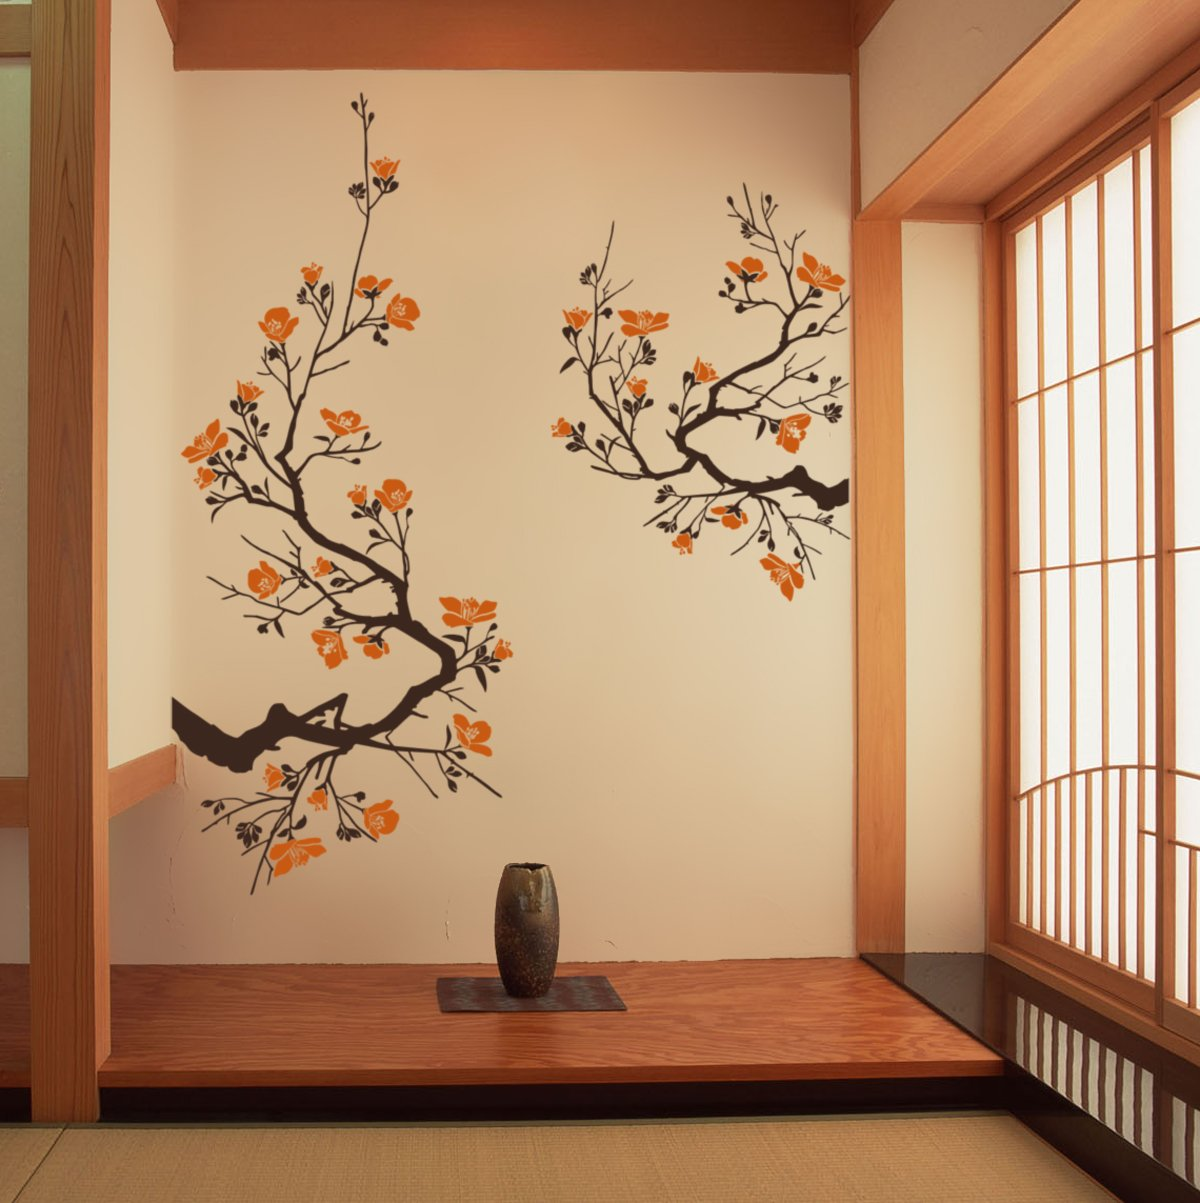 Amazon.com: Cherry Blossom Wall Sticker Large Decal Decor (Default ...